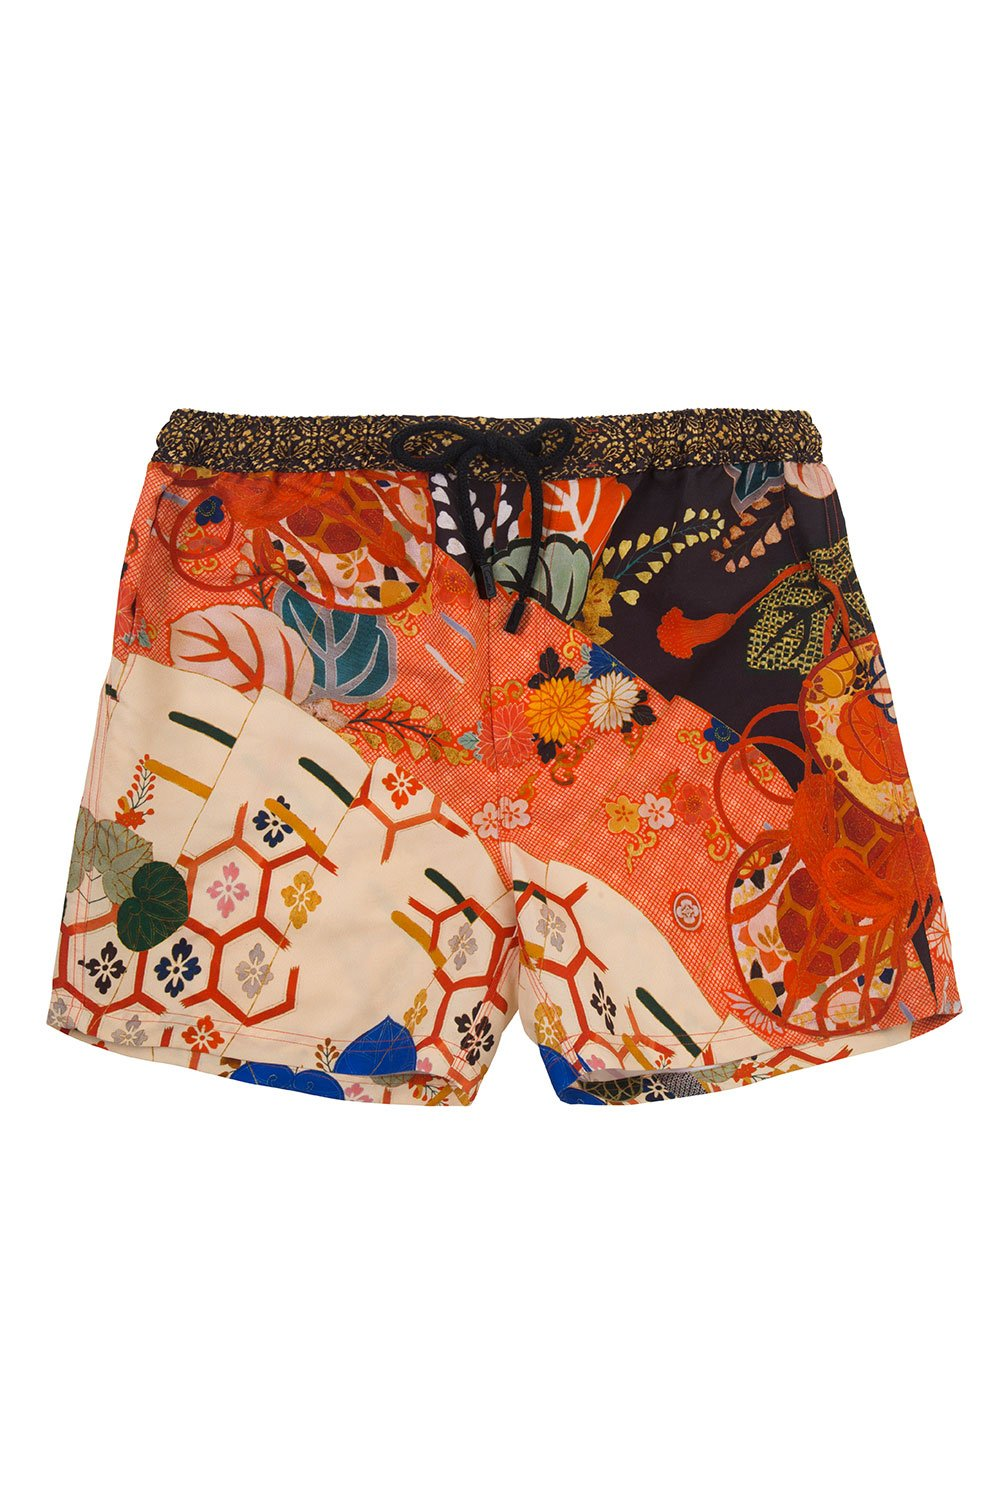 CAMILLA KISSING THE SUN MENS ELASTIC WAIST BOARDSHORT